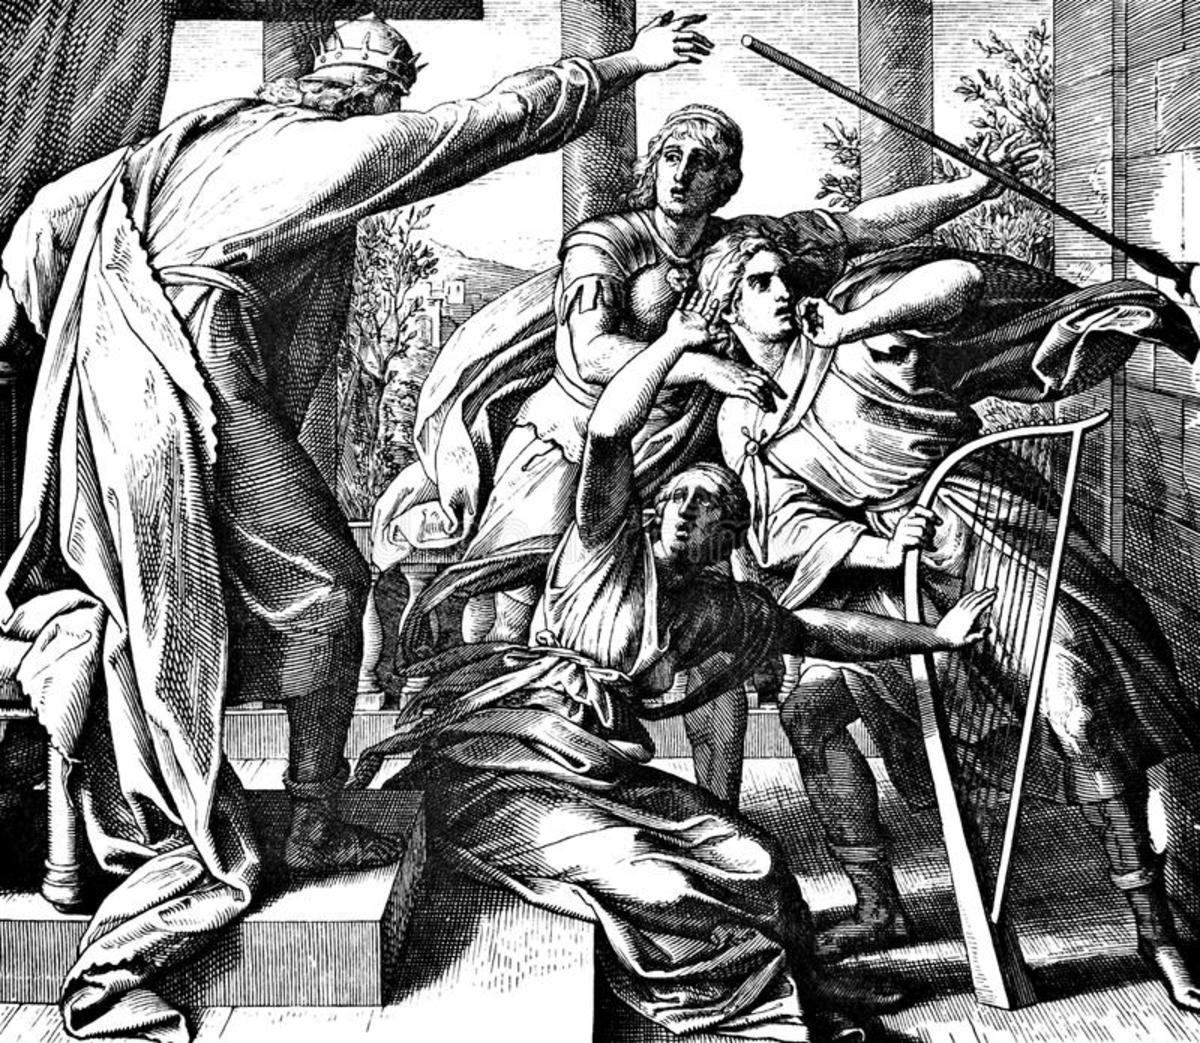 Saul tries to kill David with javelin.